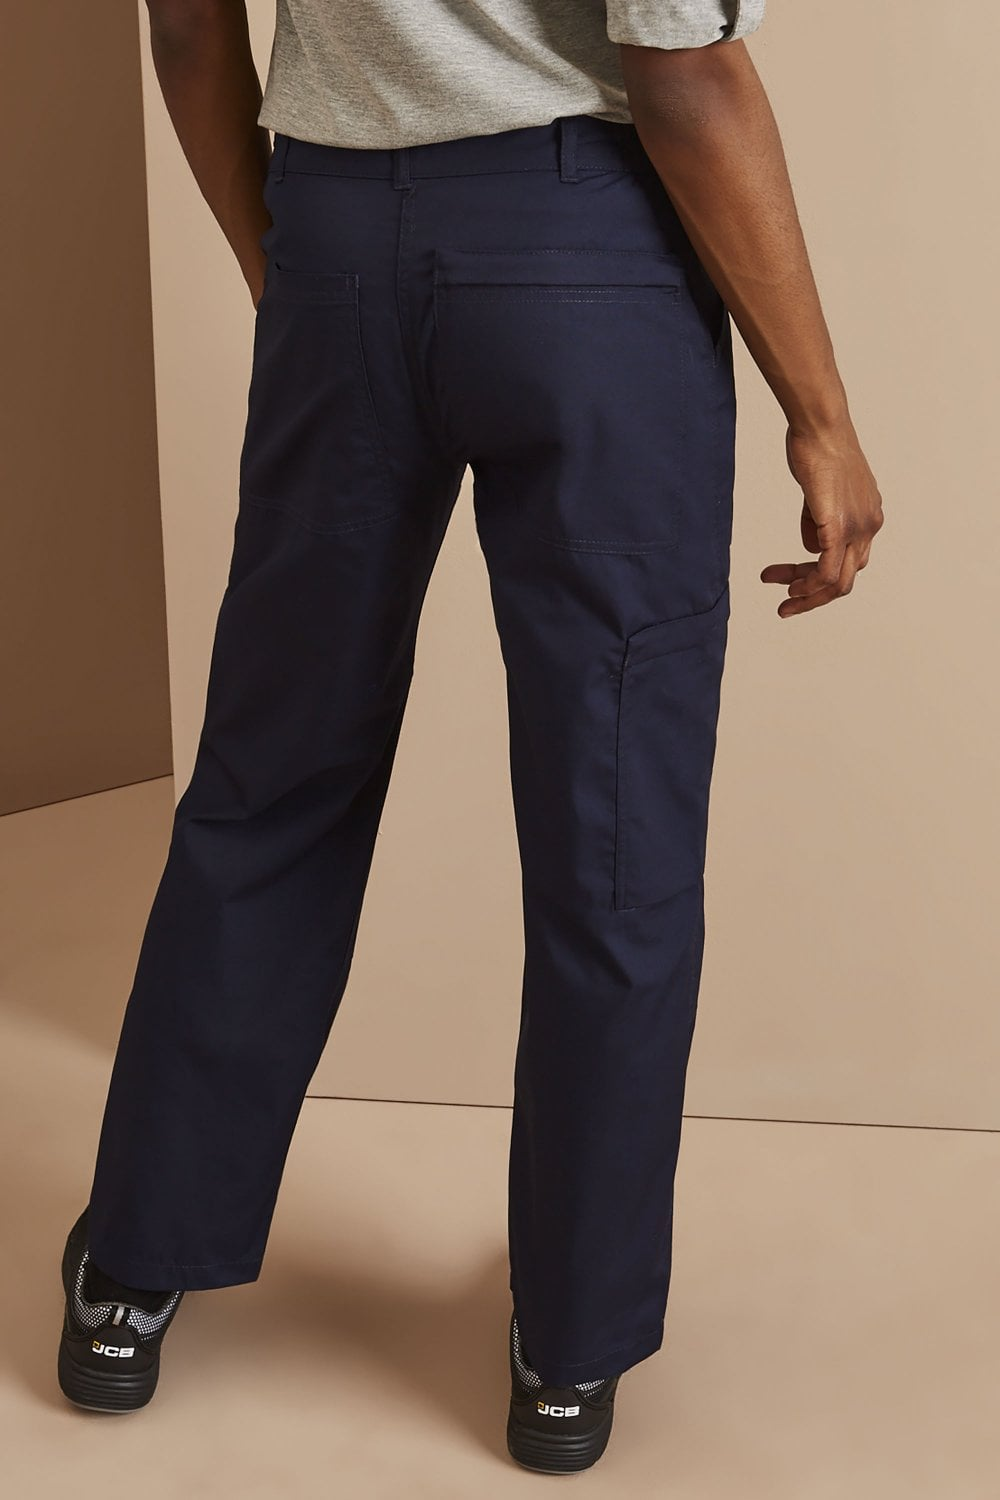 Blue NA Manufacturer Size:10 Navy Regatta Womens New Womans Action Trouser Workwear Trousers